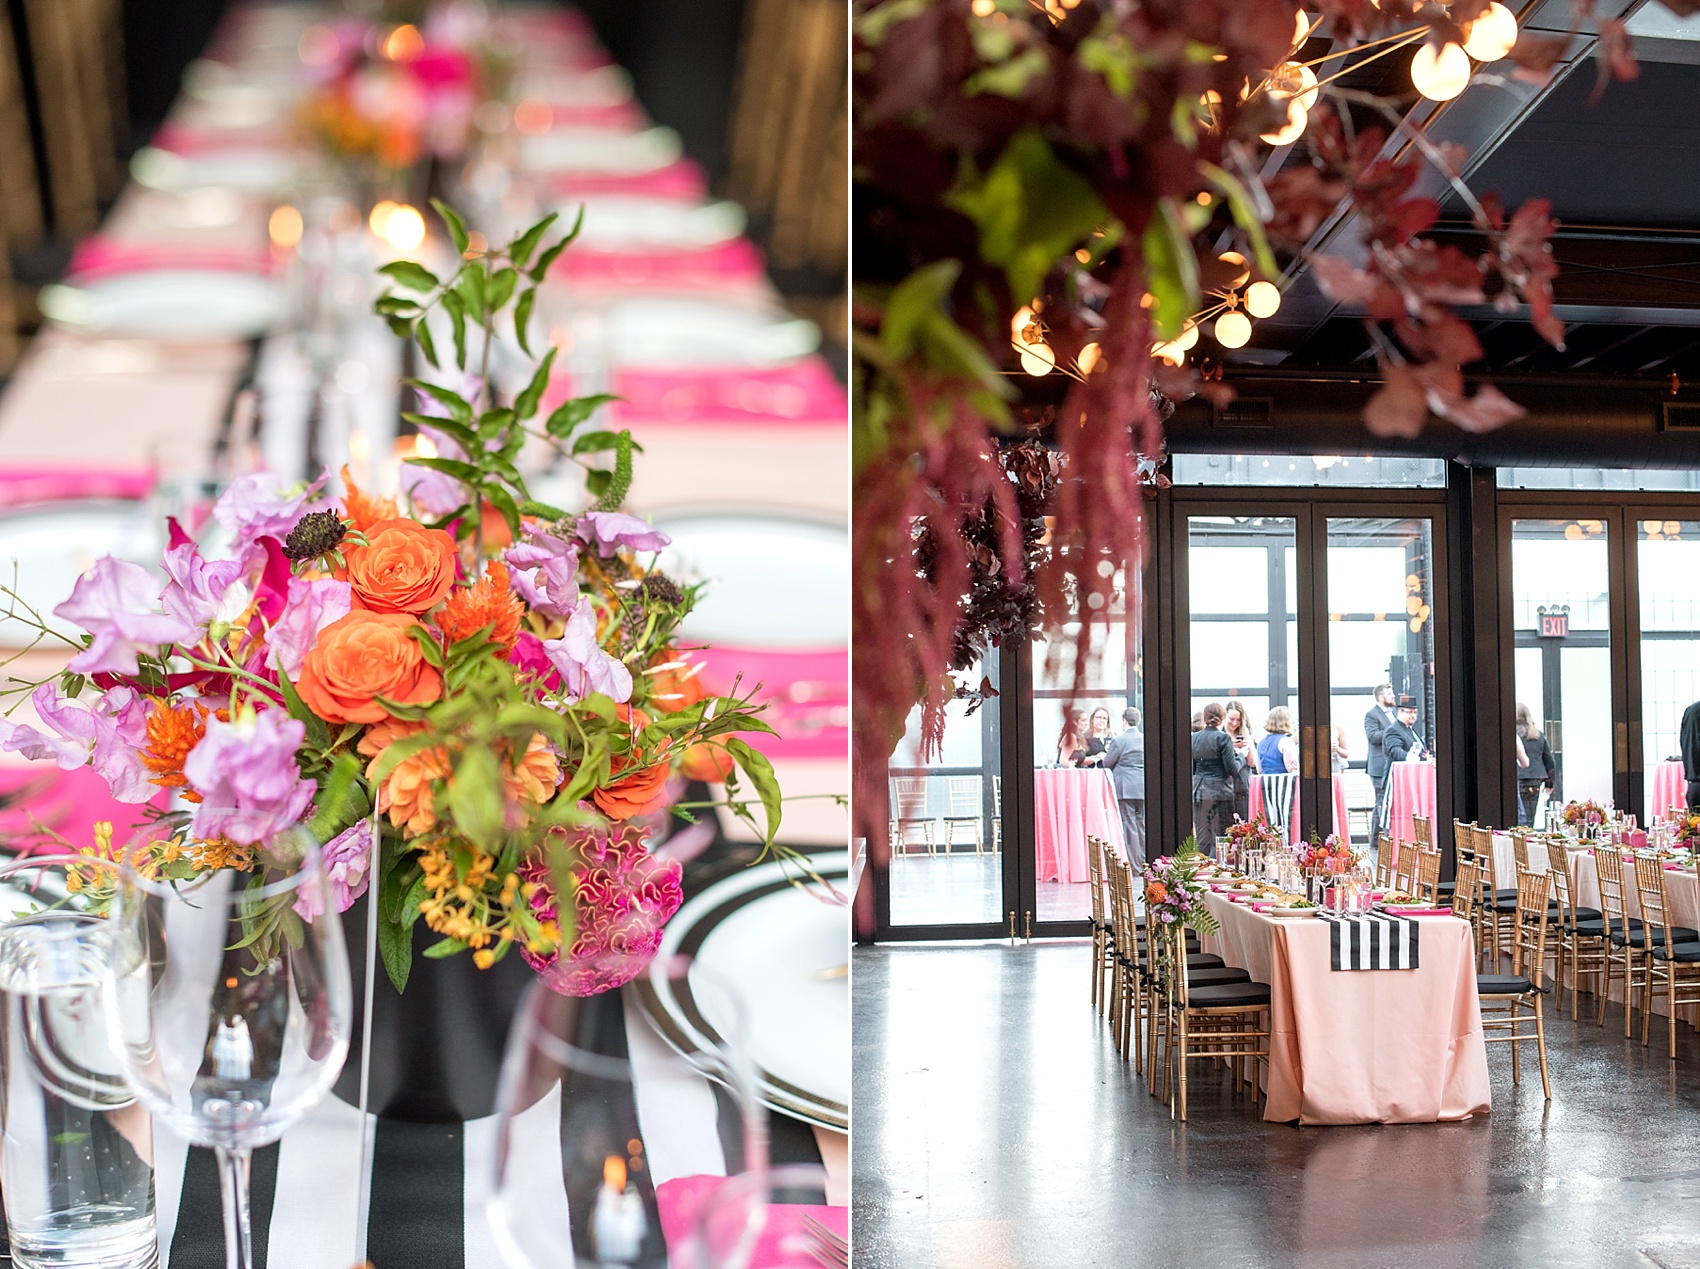 501 Union lesbian wedding. Photos by Mikkel Paige Photography, in Brooklyn, NYC. Planning by Ashley M Chamblin Events. Overall room photo with pink linens and brightly colored flower centerpieces. Gold sequin backdrop. Flowers by August Sage and Violet.